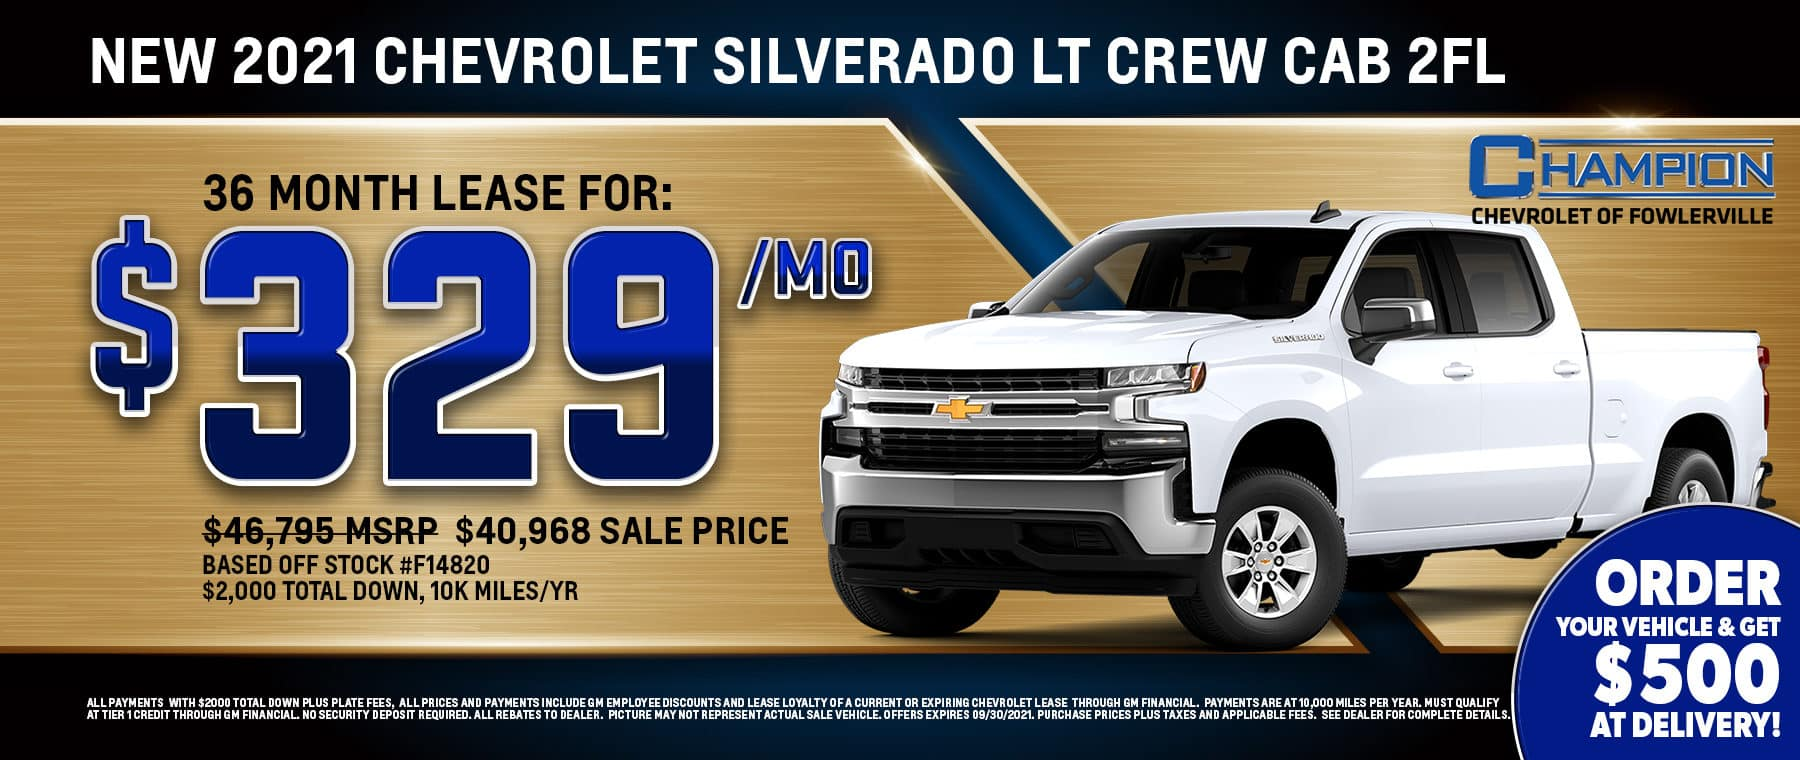 9_21_Champion_Fowlerville_Chevy_1800x760_web_banners-02